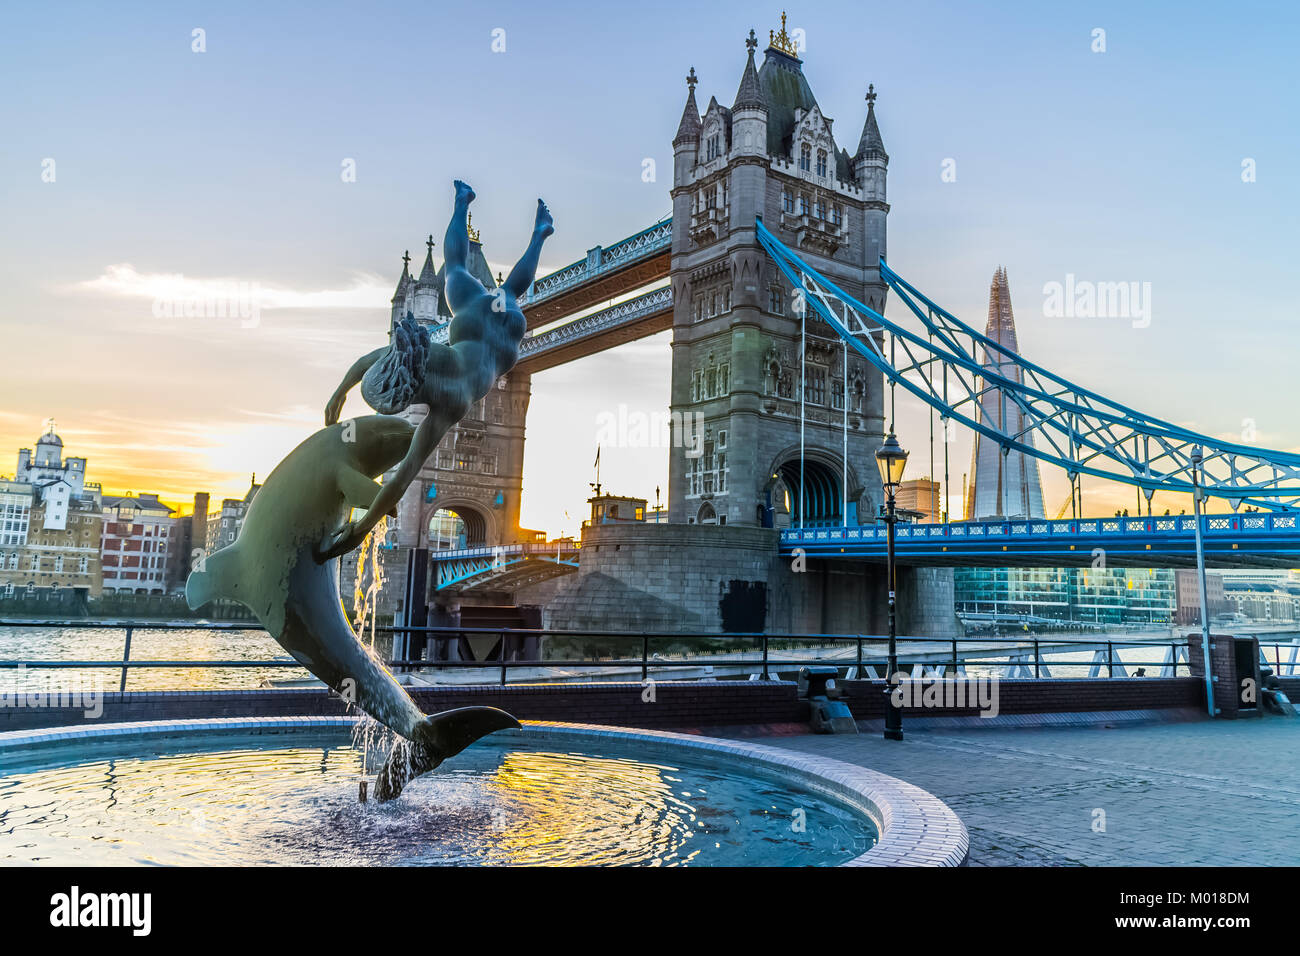 Girl with dolphin with Tower Bridge, River Thames, London. Stock Photo